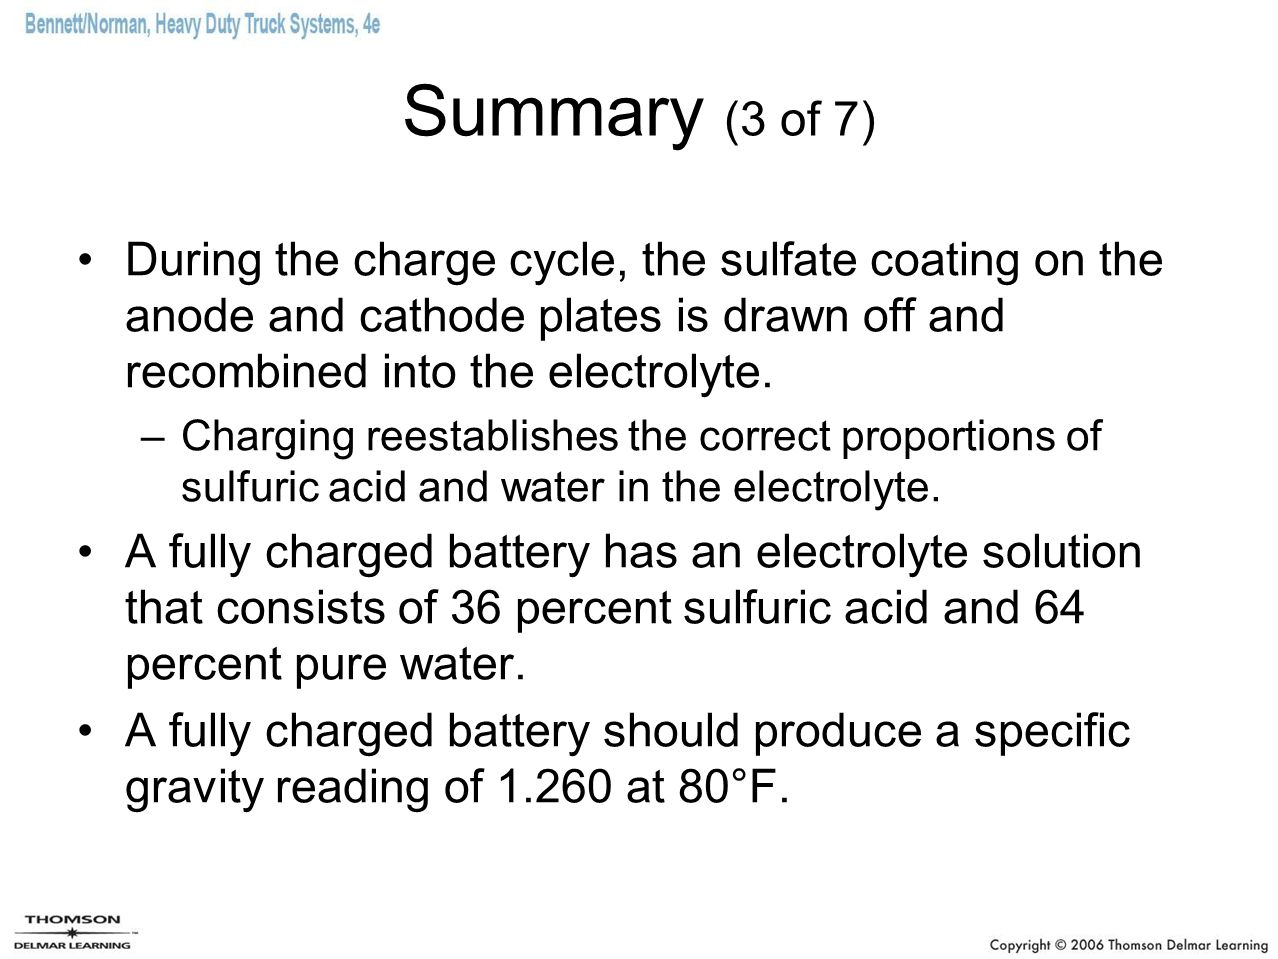 Summary (3 of 7) During the charge cycle, the sulfate coating on the anode and cathode plates is drawn off and recombined into the electrolyte.